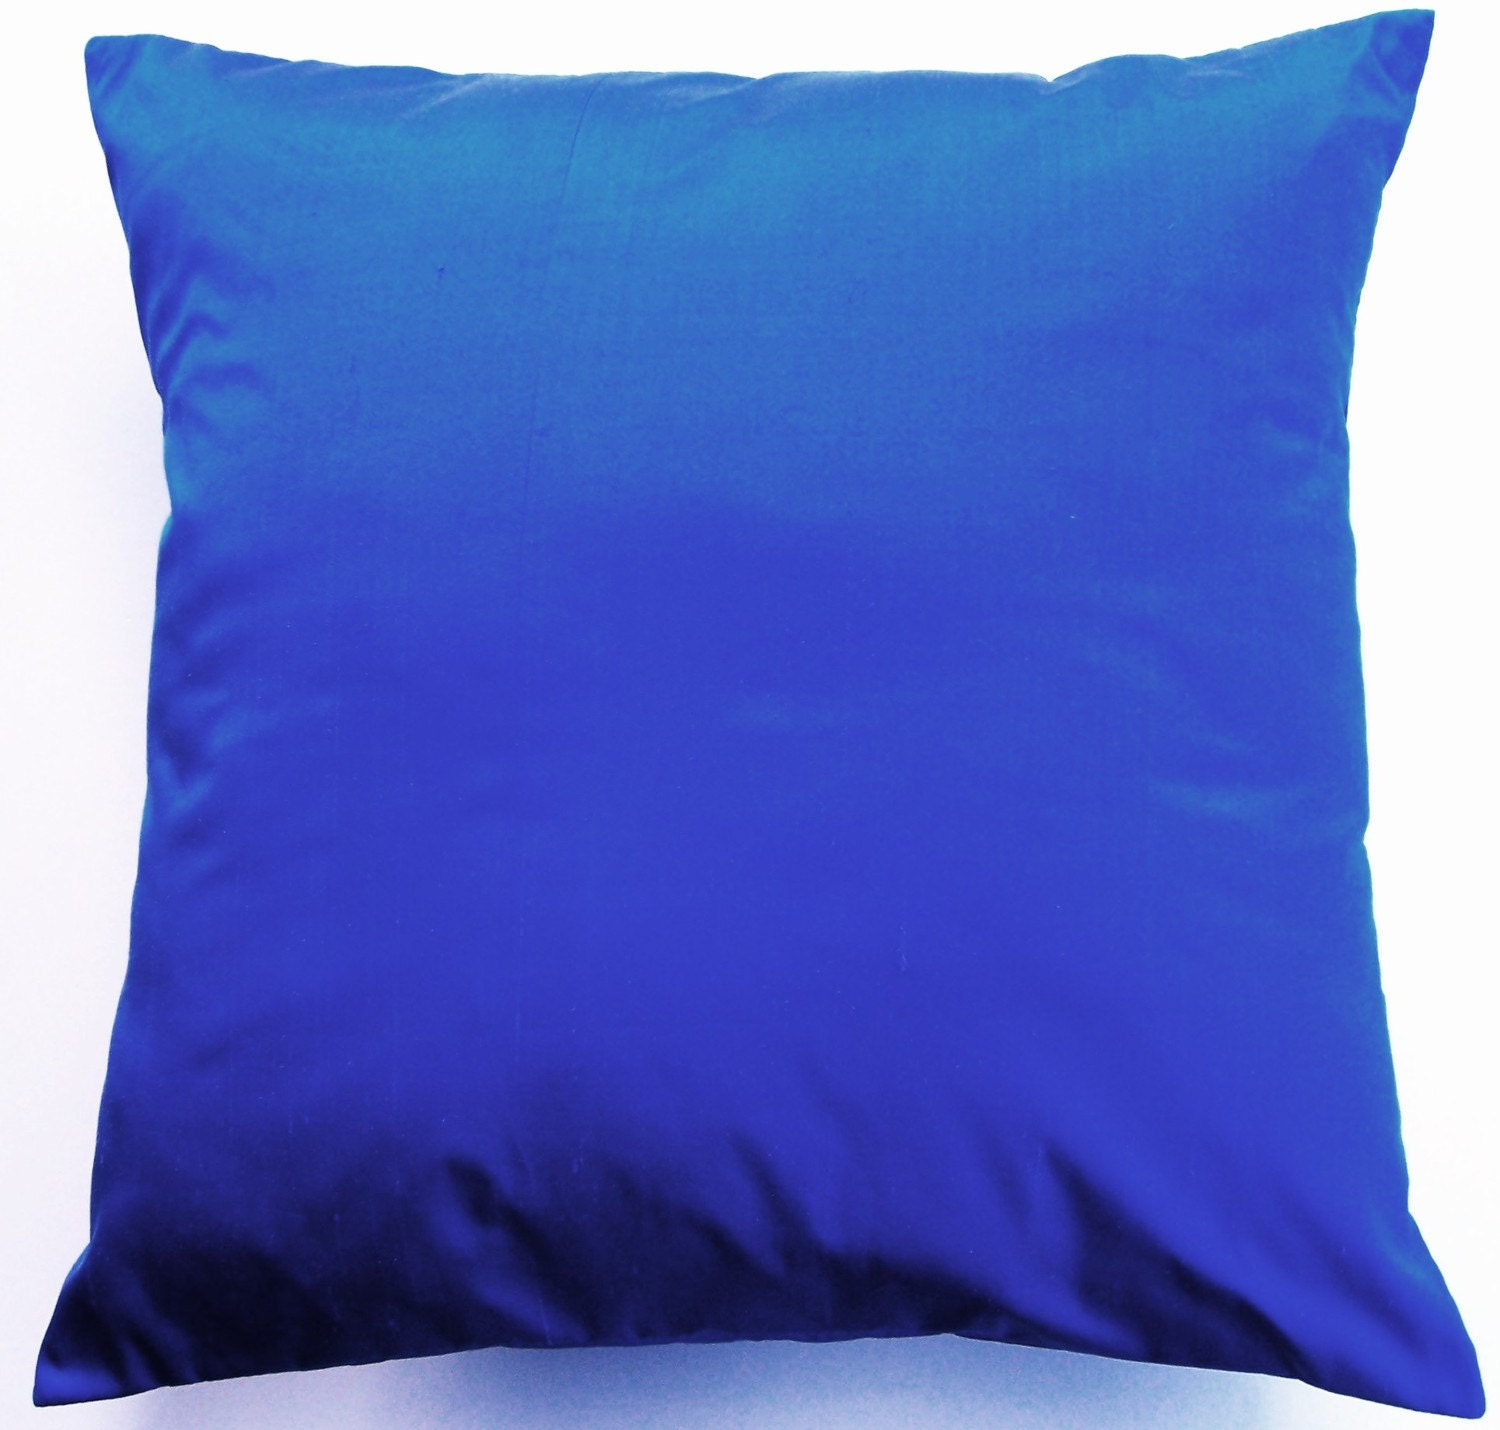 Cobalt Blue Throw Pillow Simply Silk Cushion Cover 16 x 16